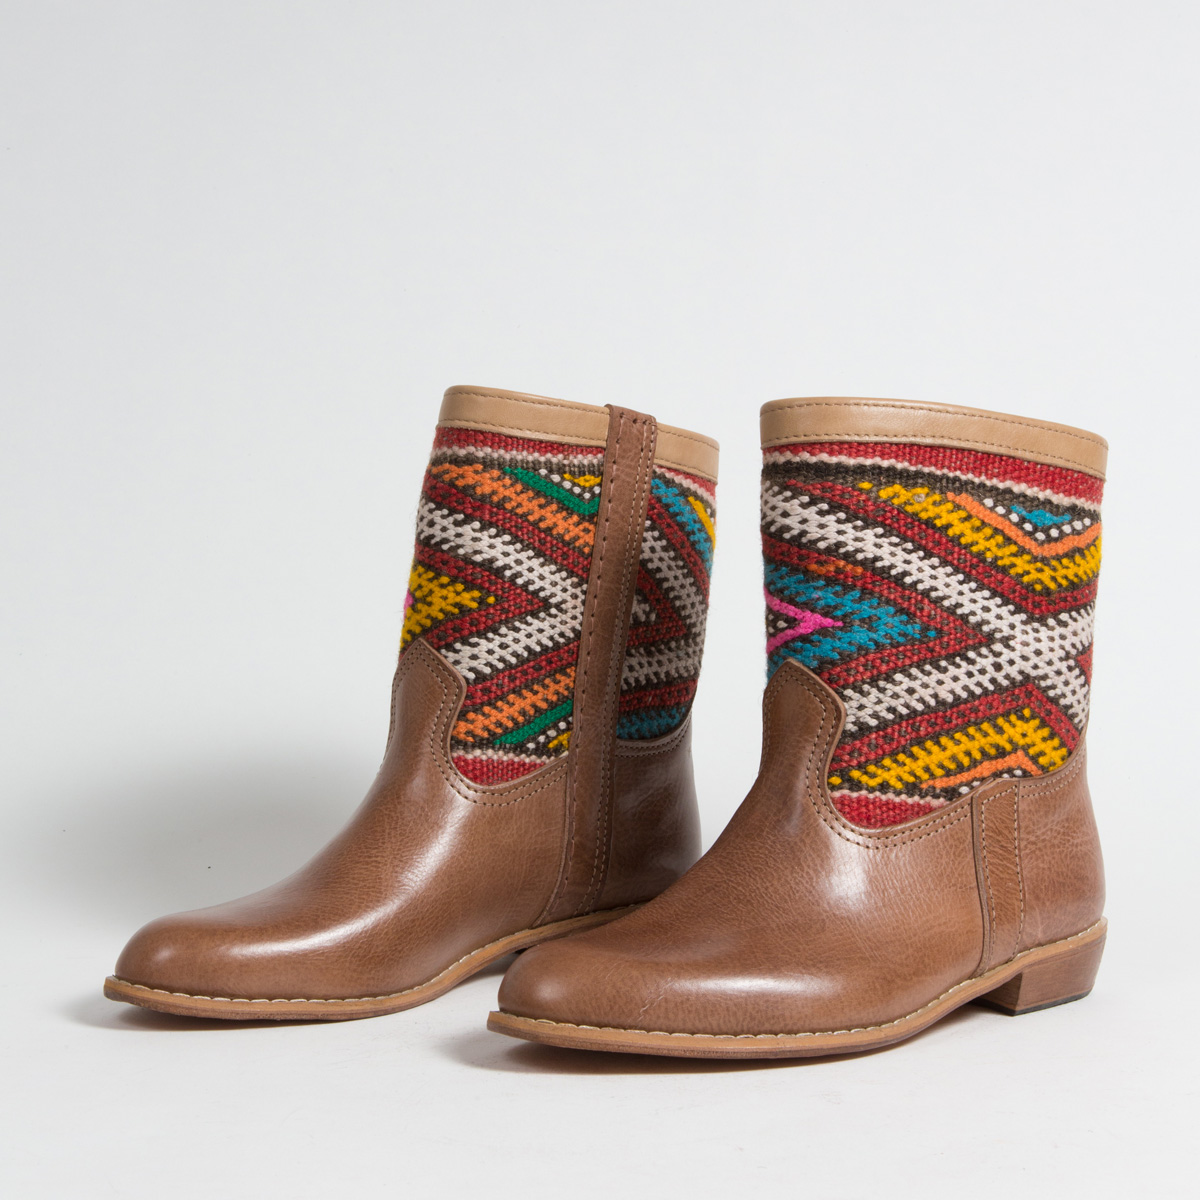 Bottines Kilim cuir mababouche artisanales (Réf. MCH5-40)